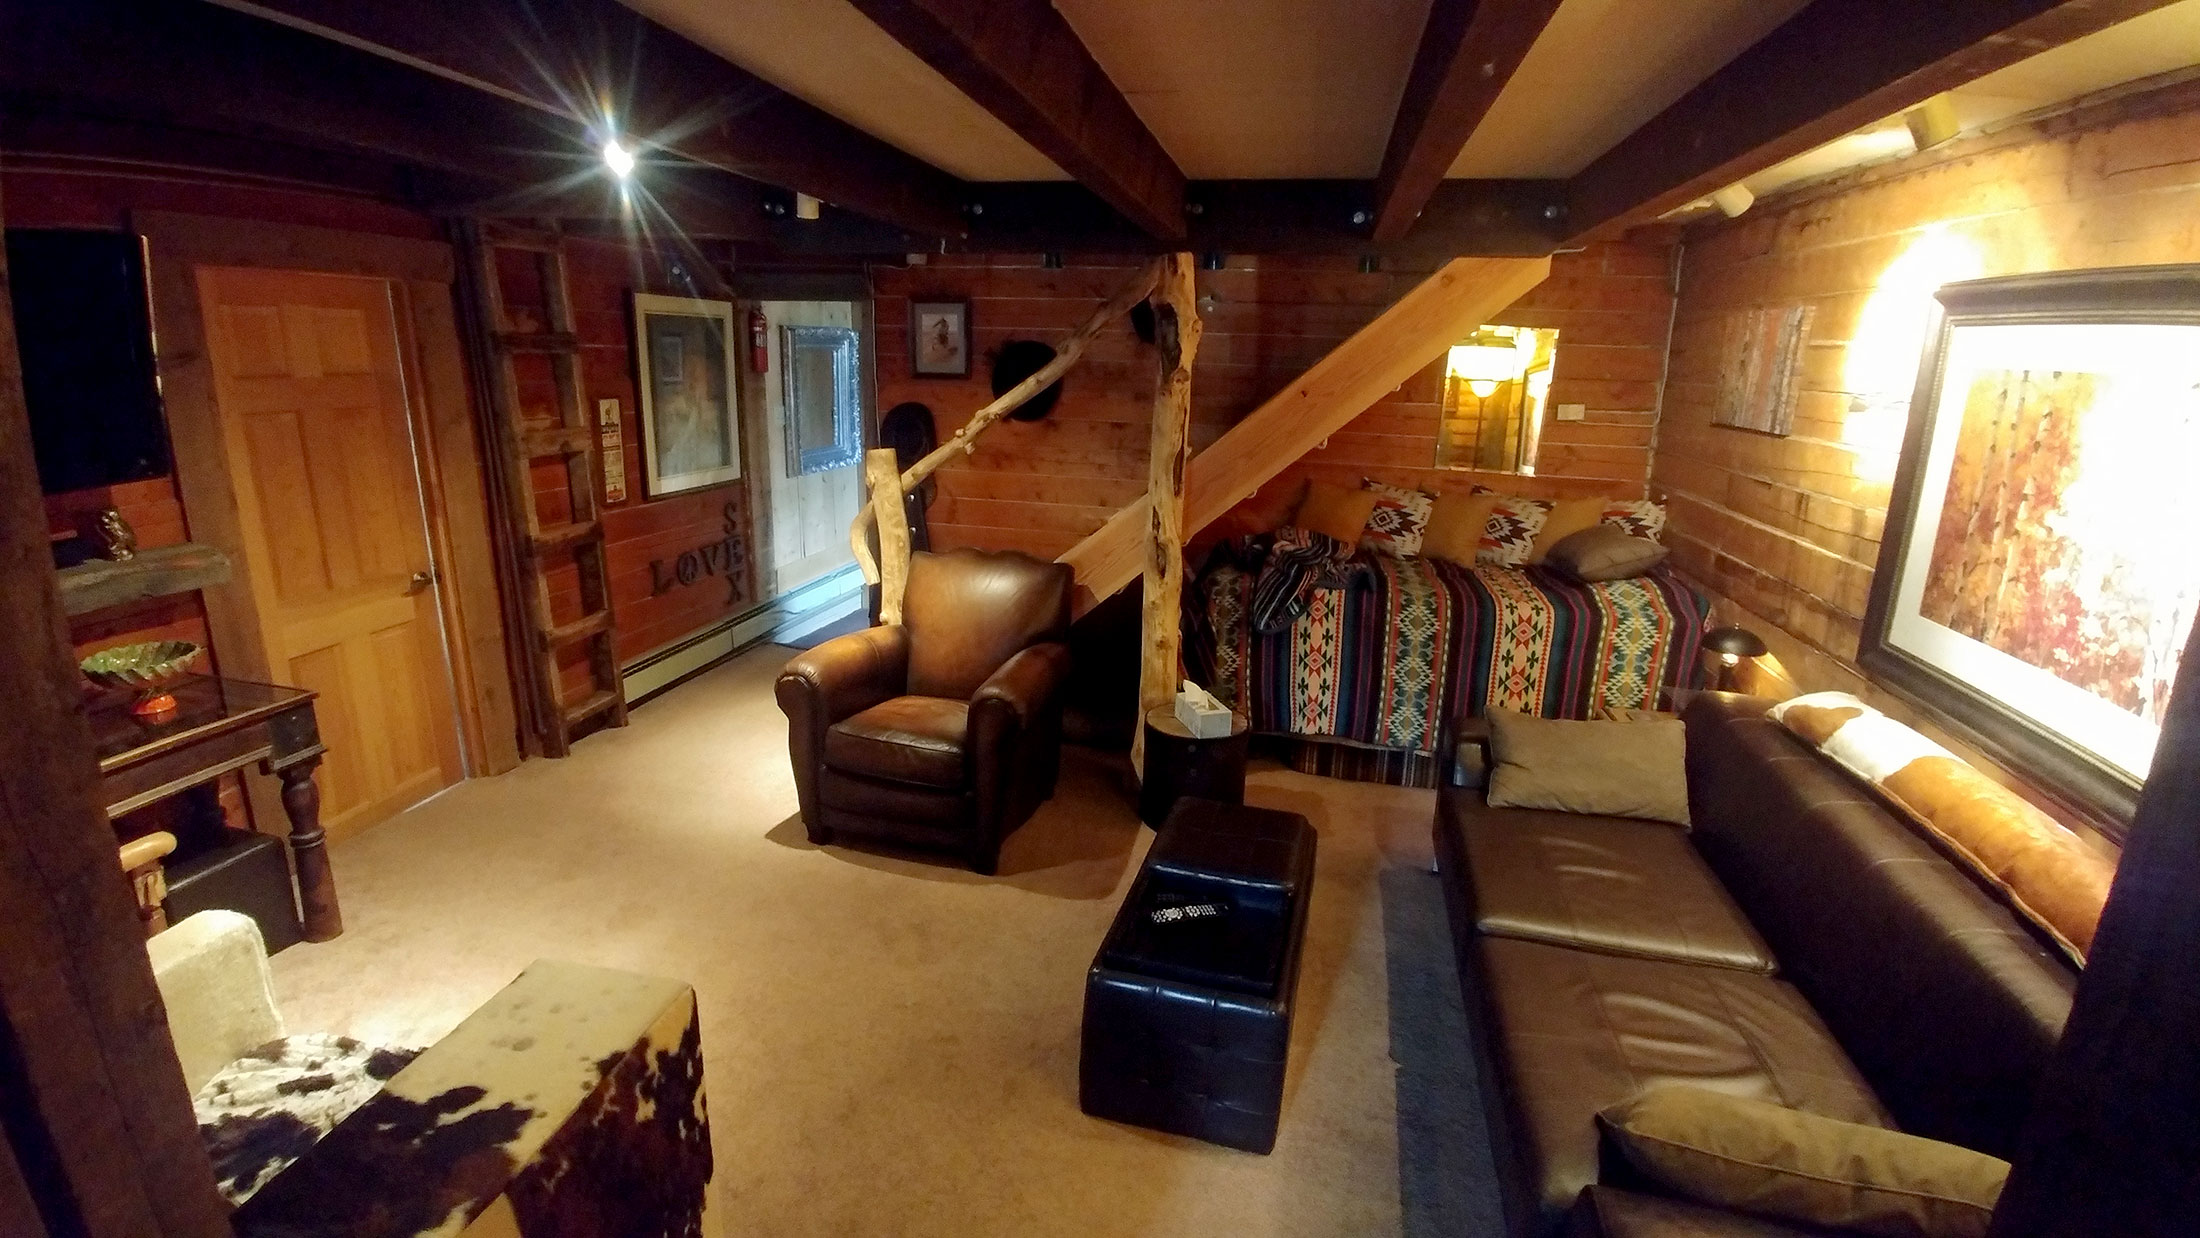 The living room at the Bunk House Lodge in Breckenridge, Colorado.